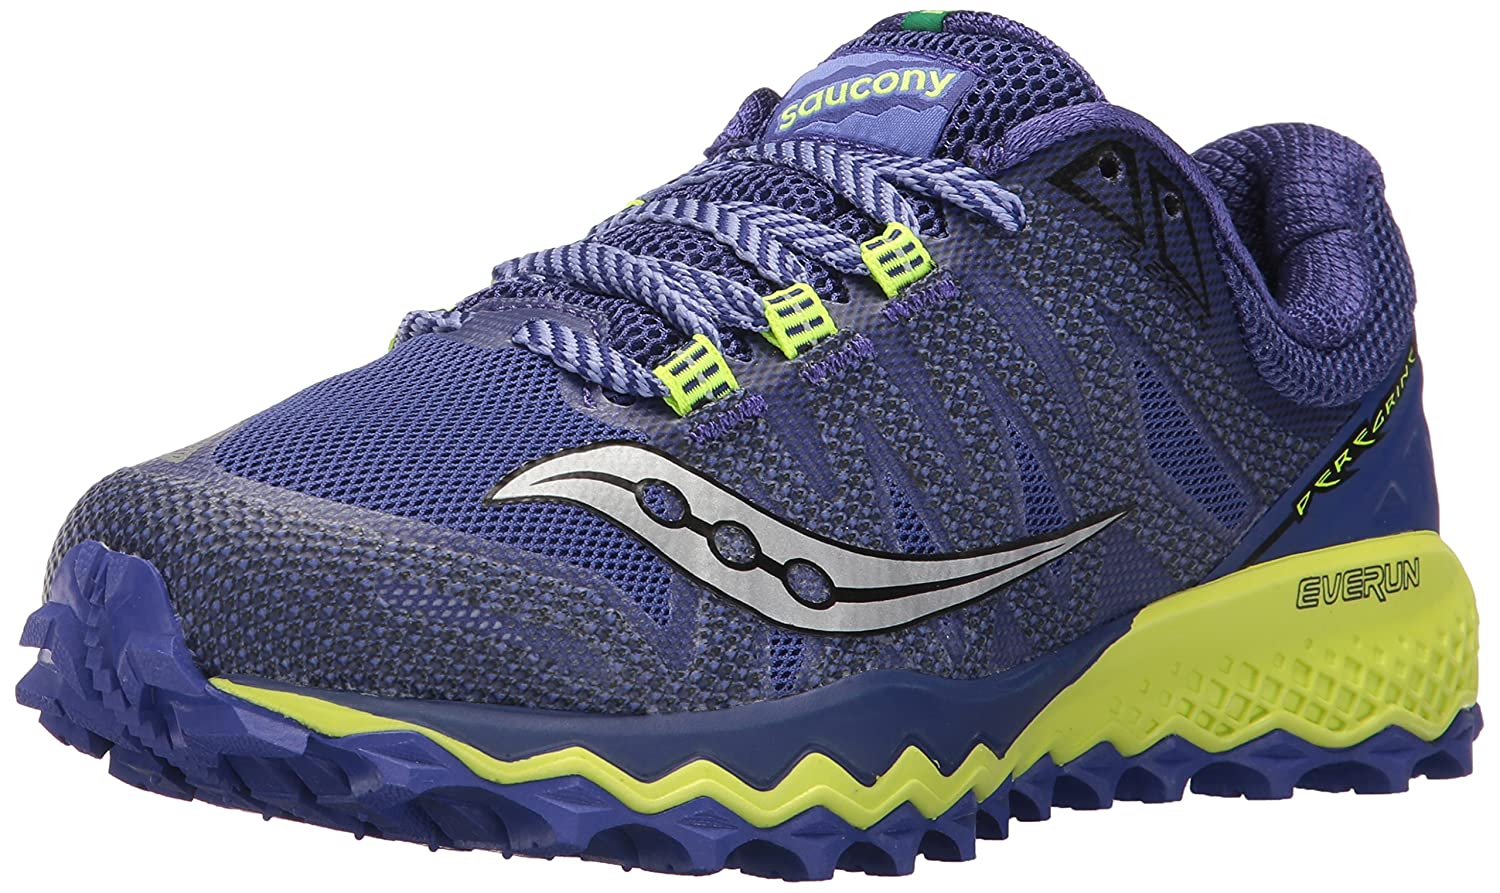 Saucony Women's Peregrine 7 Trail Running Shoe B01N0TLJKW 9.5 B(M) US|Blue Citron